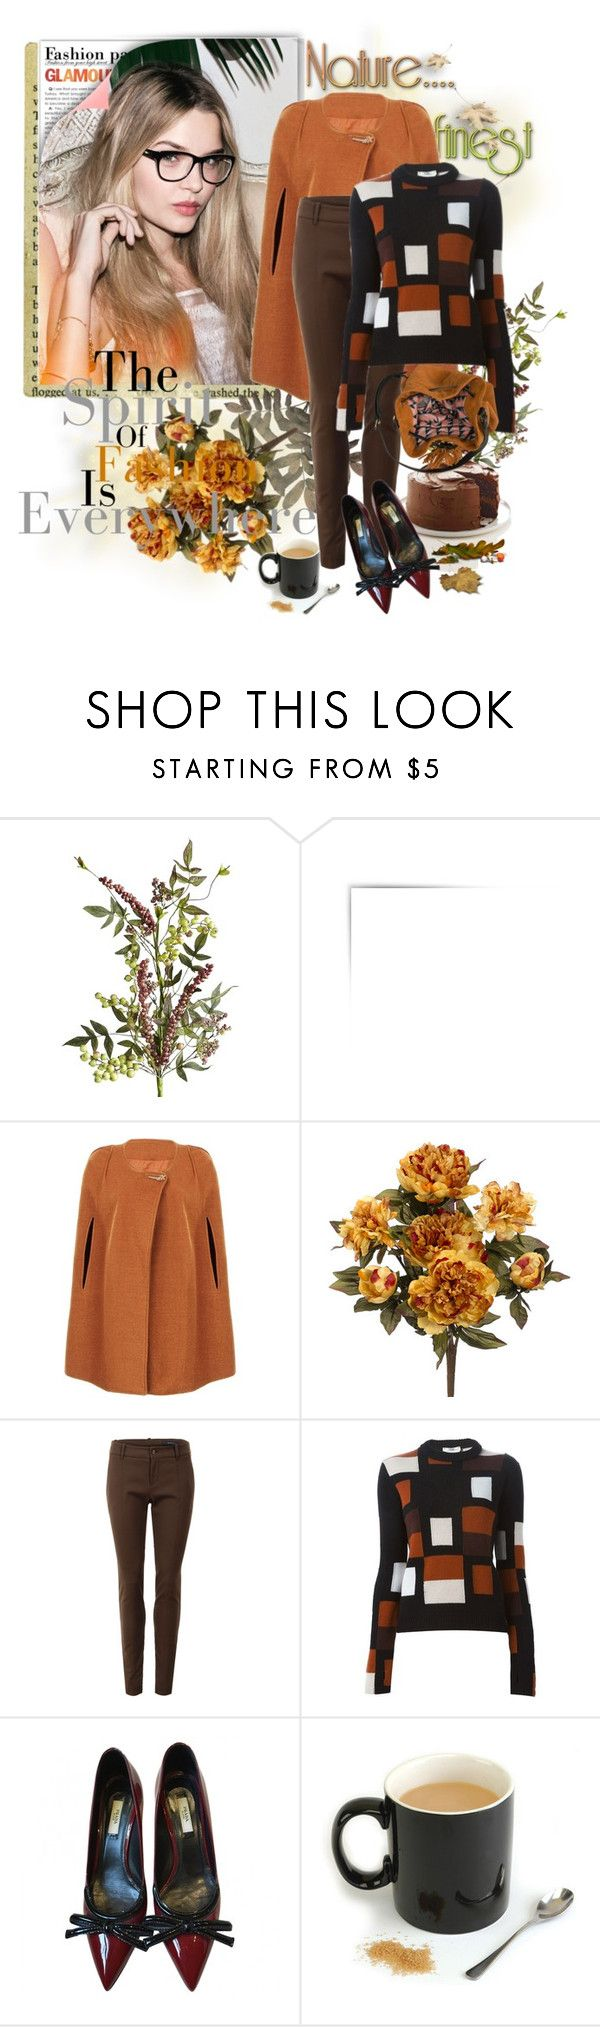 """первая неделя осени"" by trendstar-212 ❤ liked on Polyvore featuring Pier 1 Imports, Gucci, Fendi, Prada and Mono"